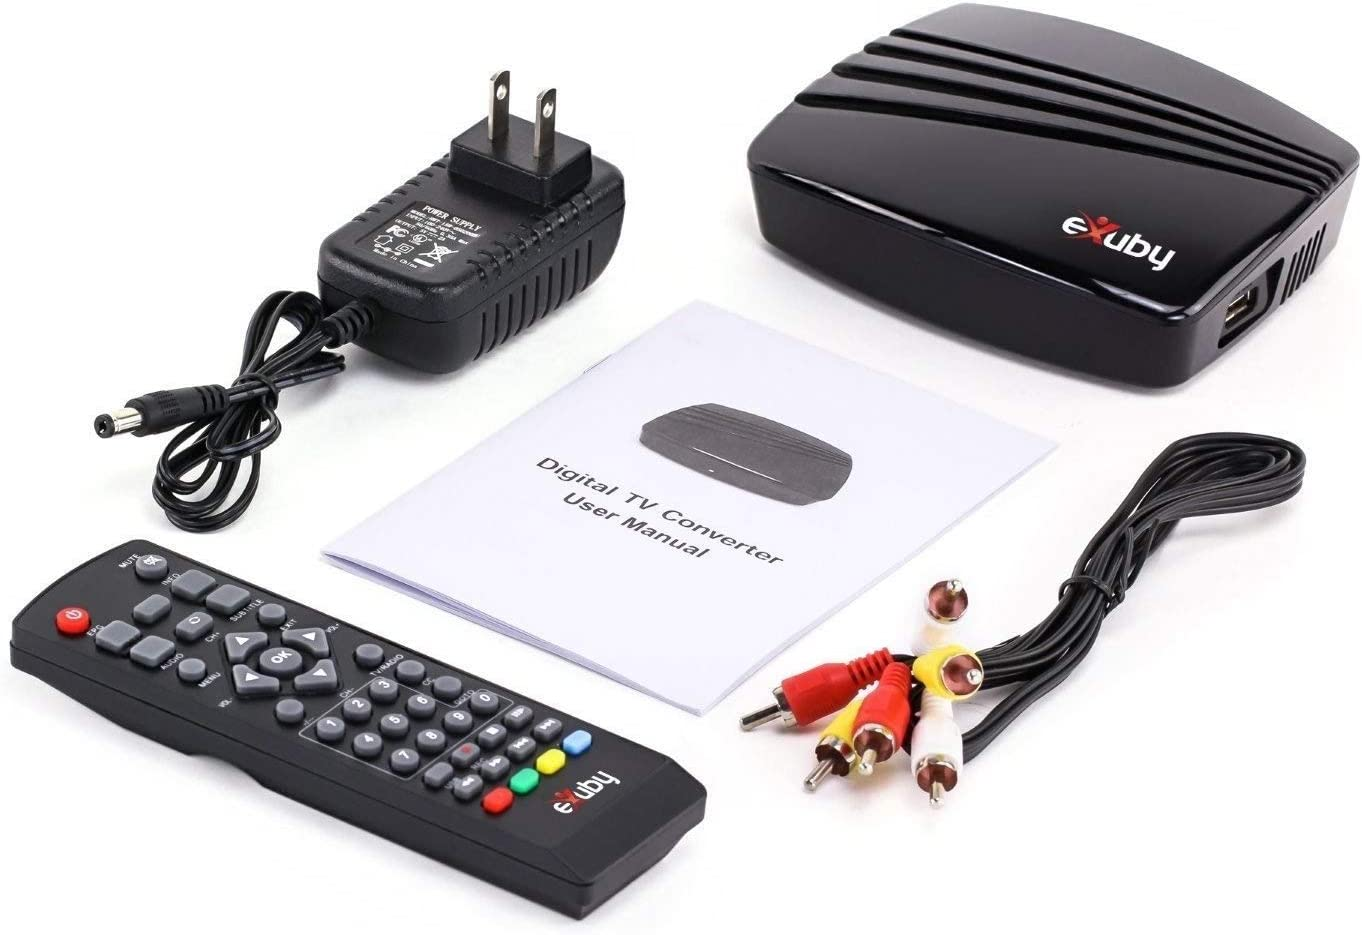 New in the Box Instant Internet TV//Radio USB Stick W//Manual Super Fast Shipping